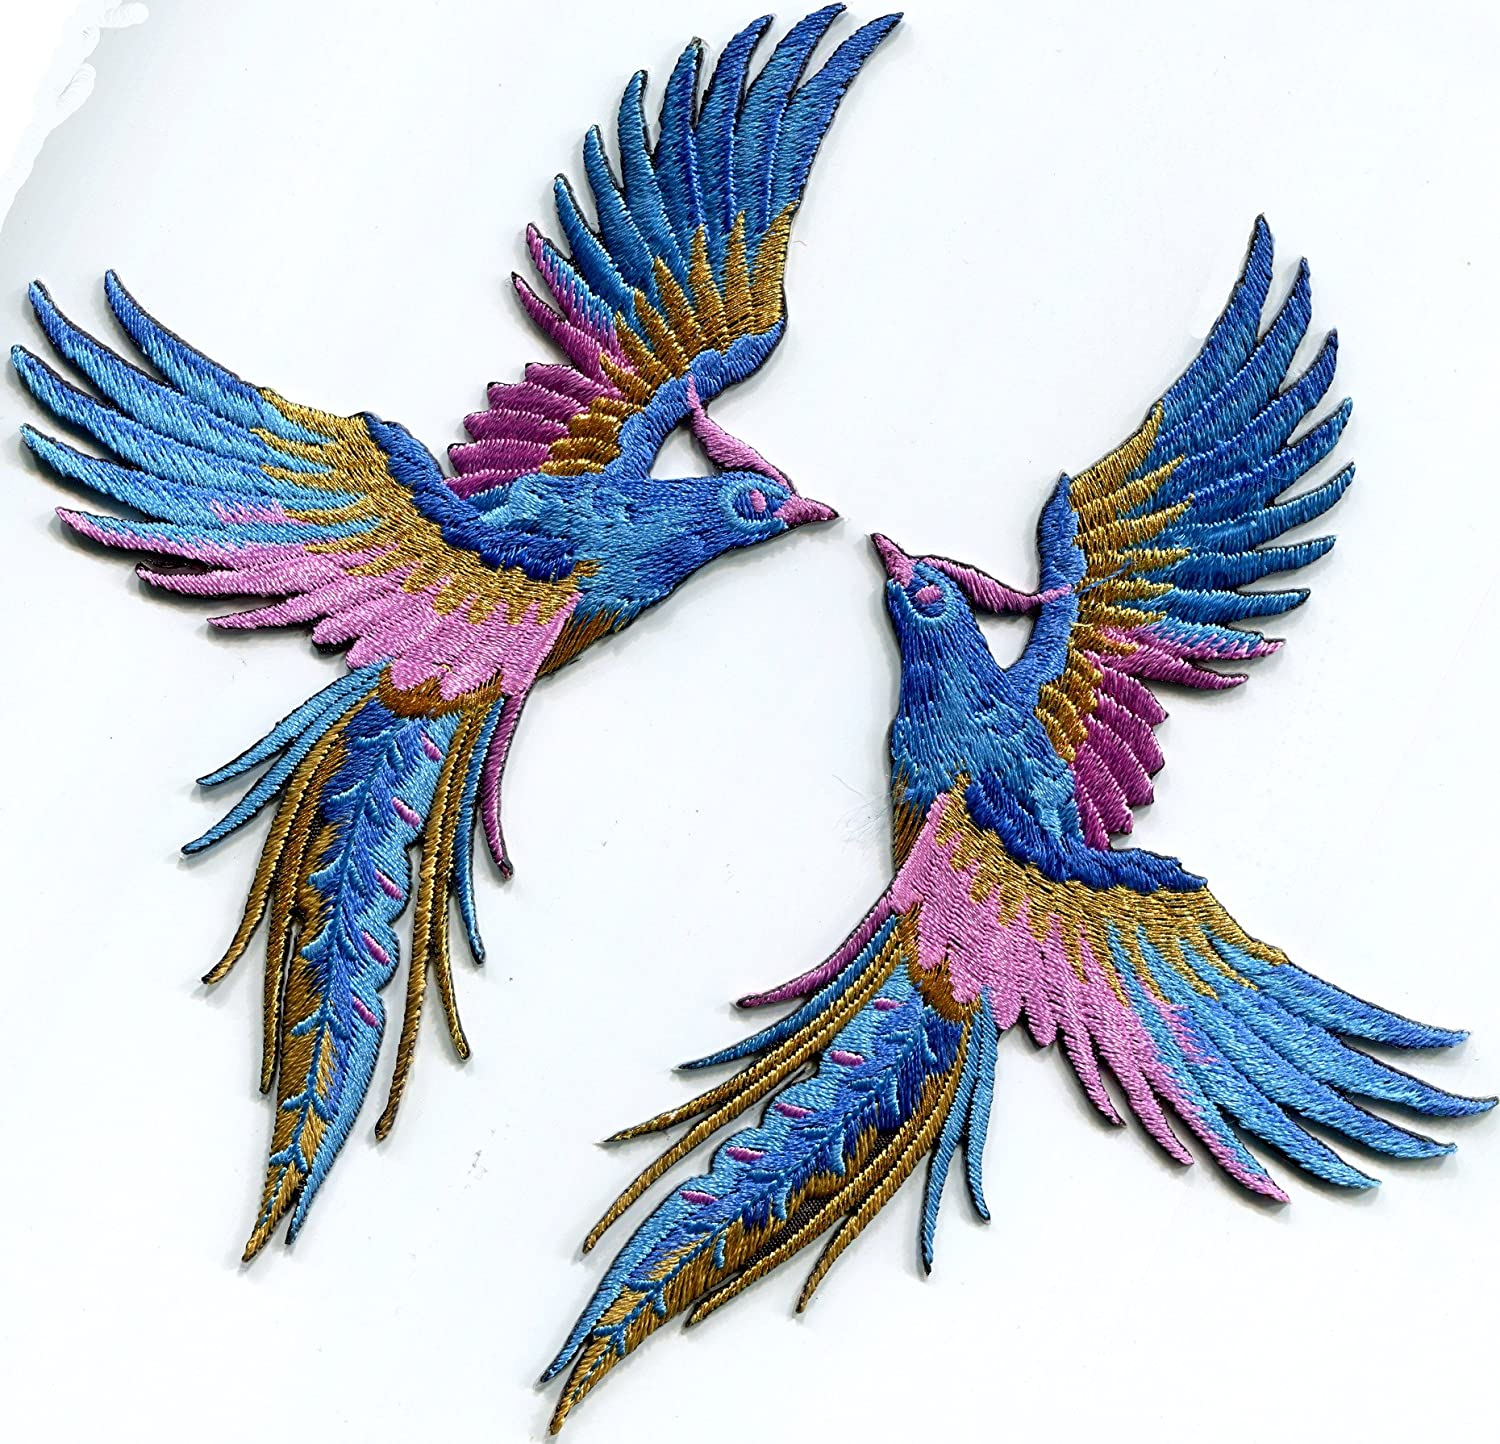 Phoenix phenix birds azure blue pink gold embroidered appliques iron-on patches pair S-1338